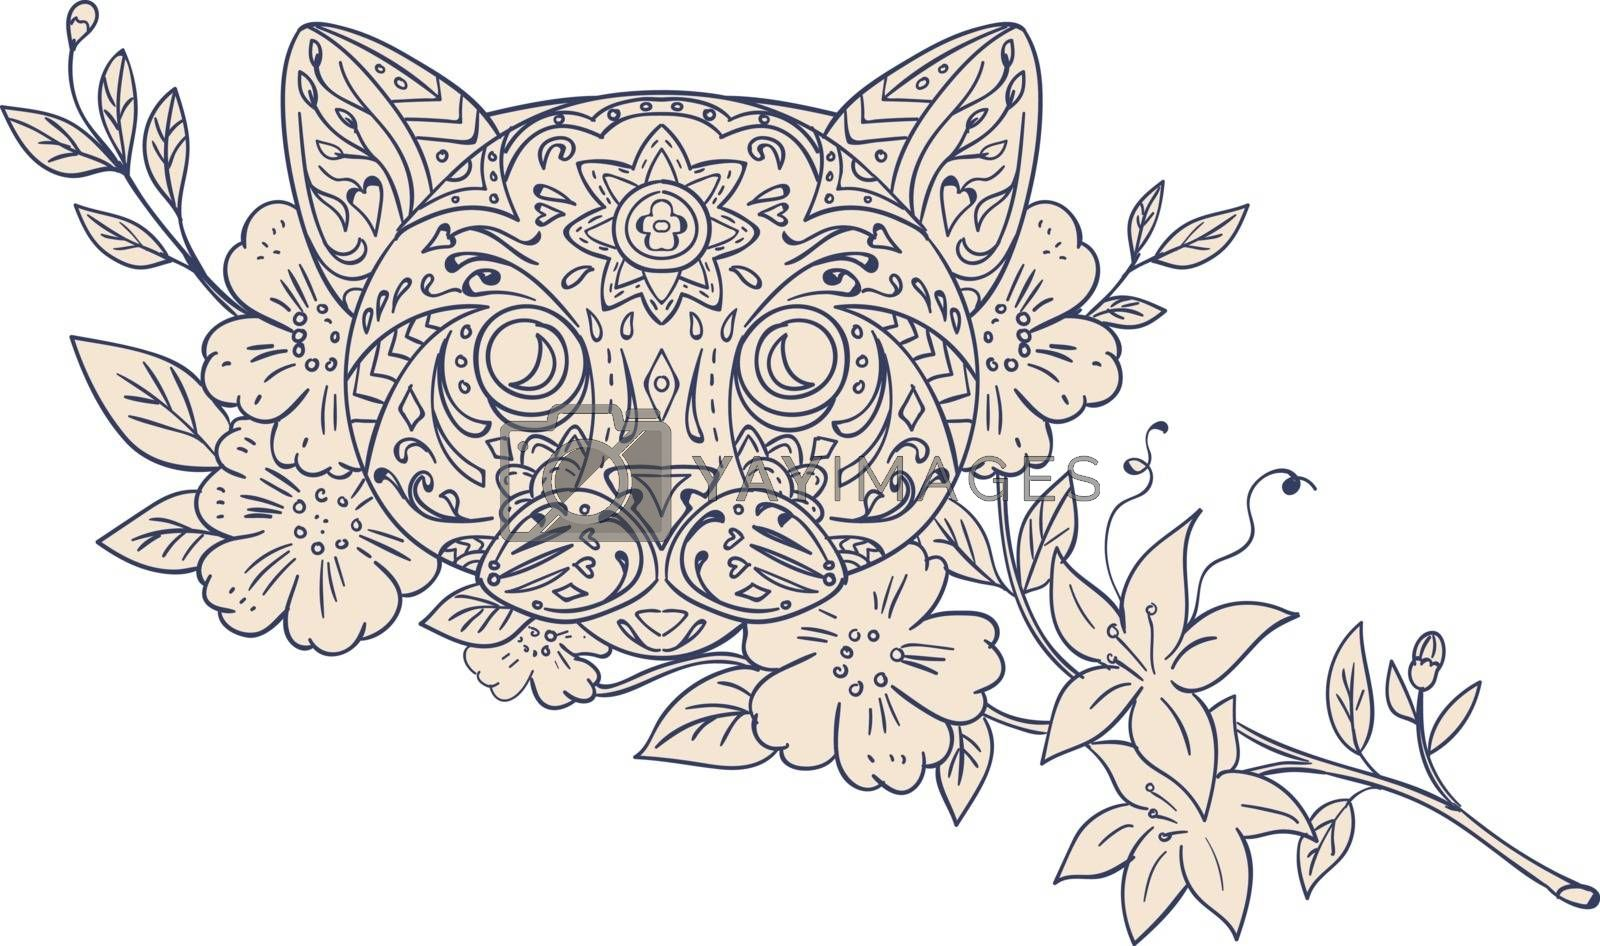 Mandala style illustration of a cat head with jasmine flowers viewed from front set on isolated white background.